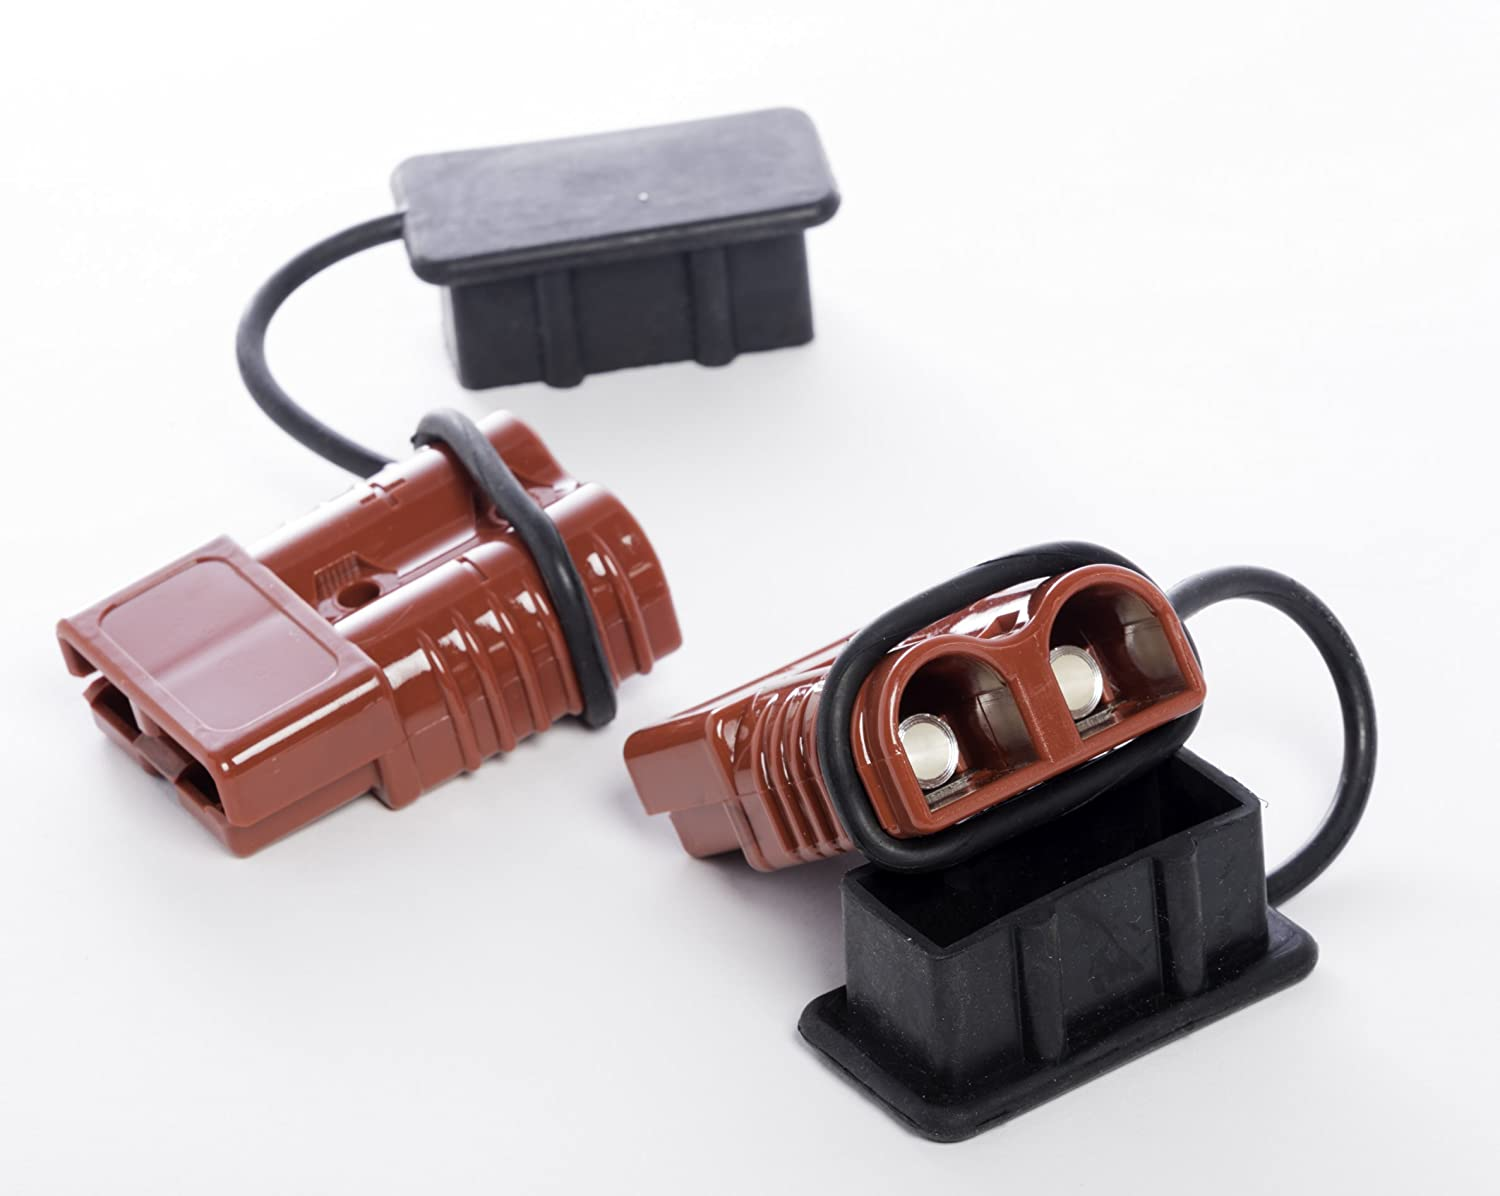 Easy to Install Alfa Wheels Premium 2-4 AWG Battery Quick Connect /& Disconnect Plug Set with 350 Amps Max Capacity Perfect for Winch Trailers Weather-Proof Rubber Caps Included